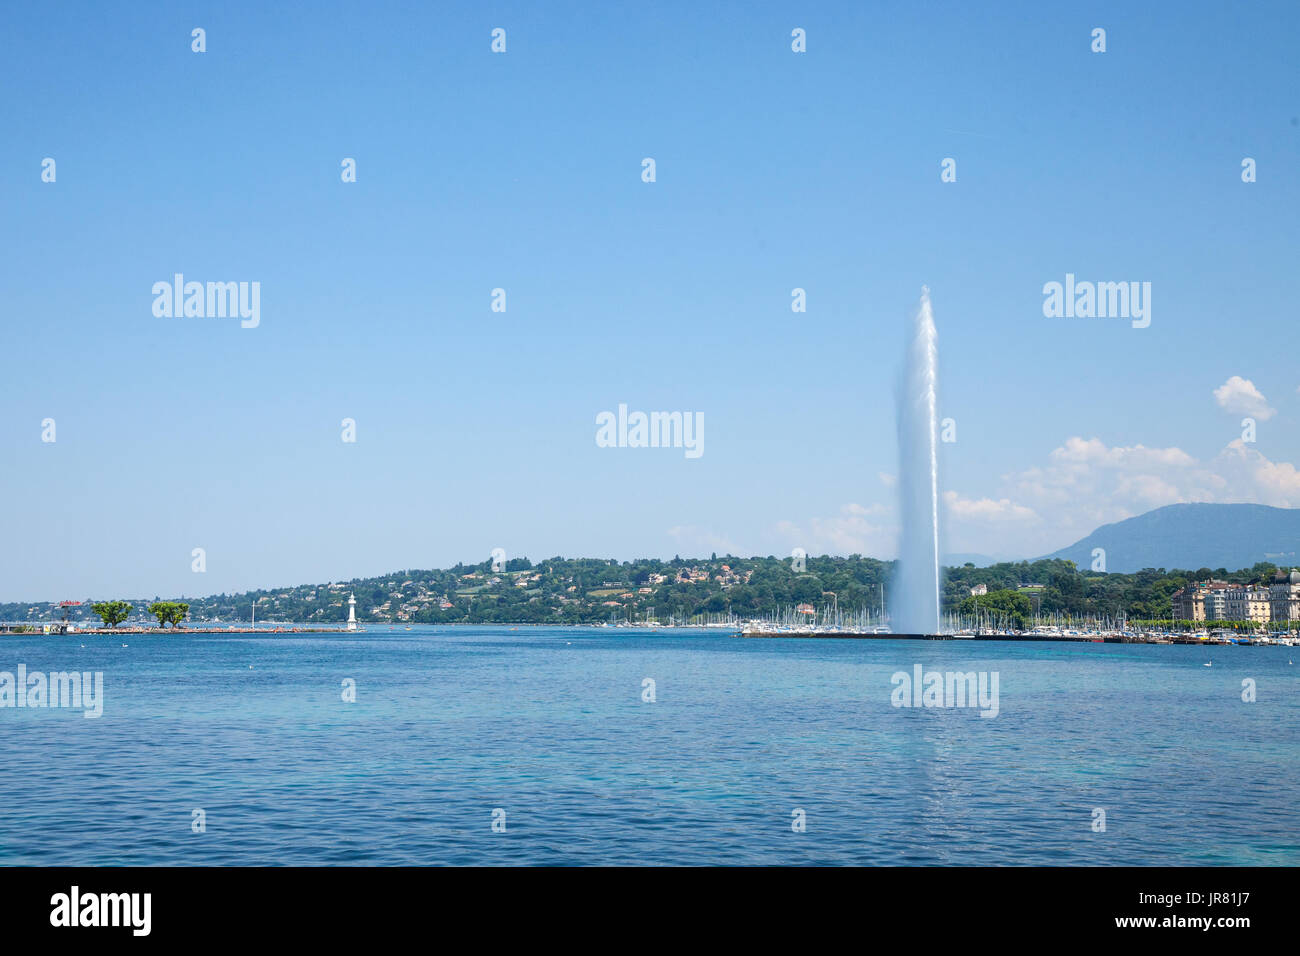 Geneva's main monument and landmark, the Jet d'Eau (Water Jet), taken in a summer afternoon with a blue sky. Geneva is one of the biggest financial pl - Stock Image